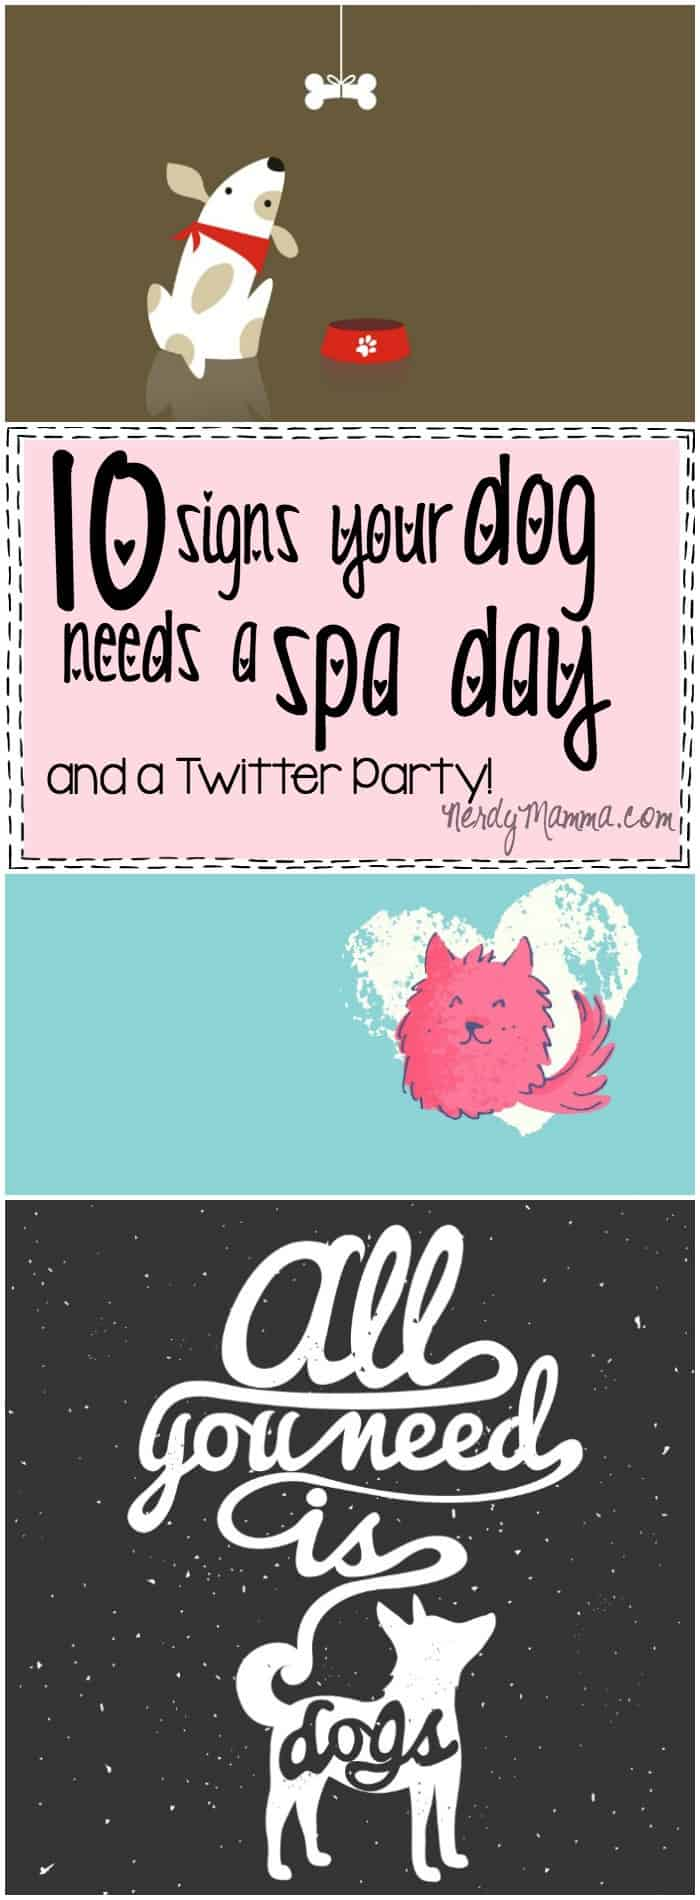 10 FUNNY signs your dog needs a spa day and adorable free dog printables! How cool!